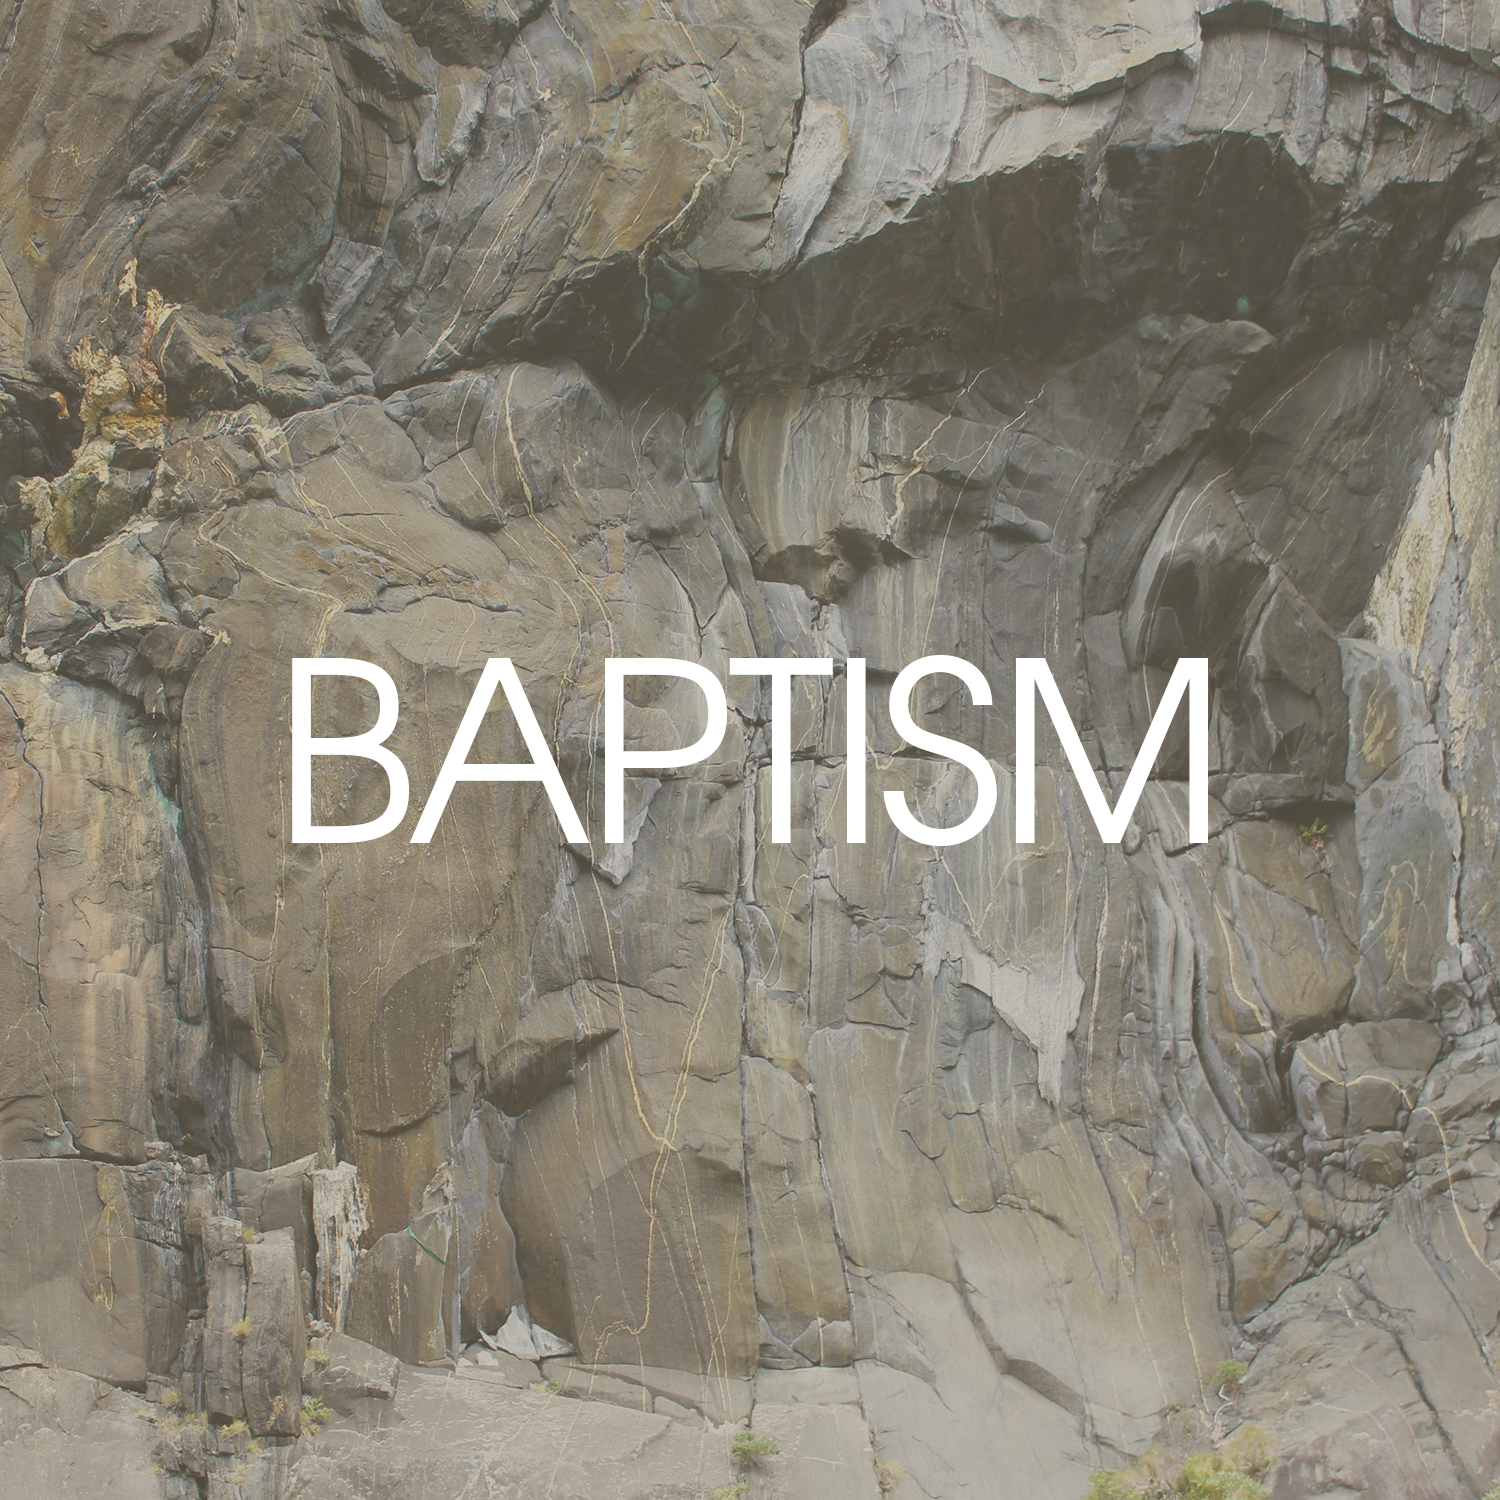 We believe that the baptism in the Holy Spirit is to give us power to live a fruitful, holy Christian life today, that we might be effective ministers of the Gospel. (Galatians 5:22,23, Isaiah 61:1, Luke 3:16,Acts 1:5-8,2:14-21,9:17-20)